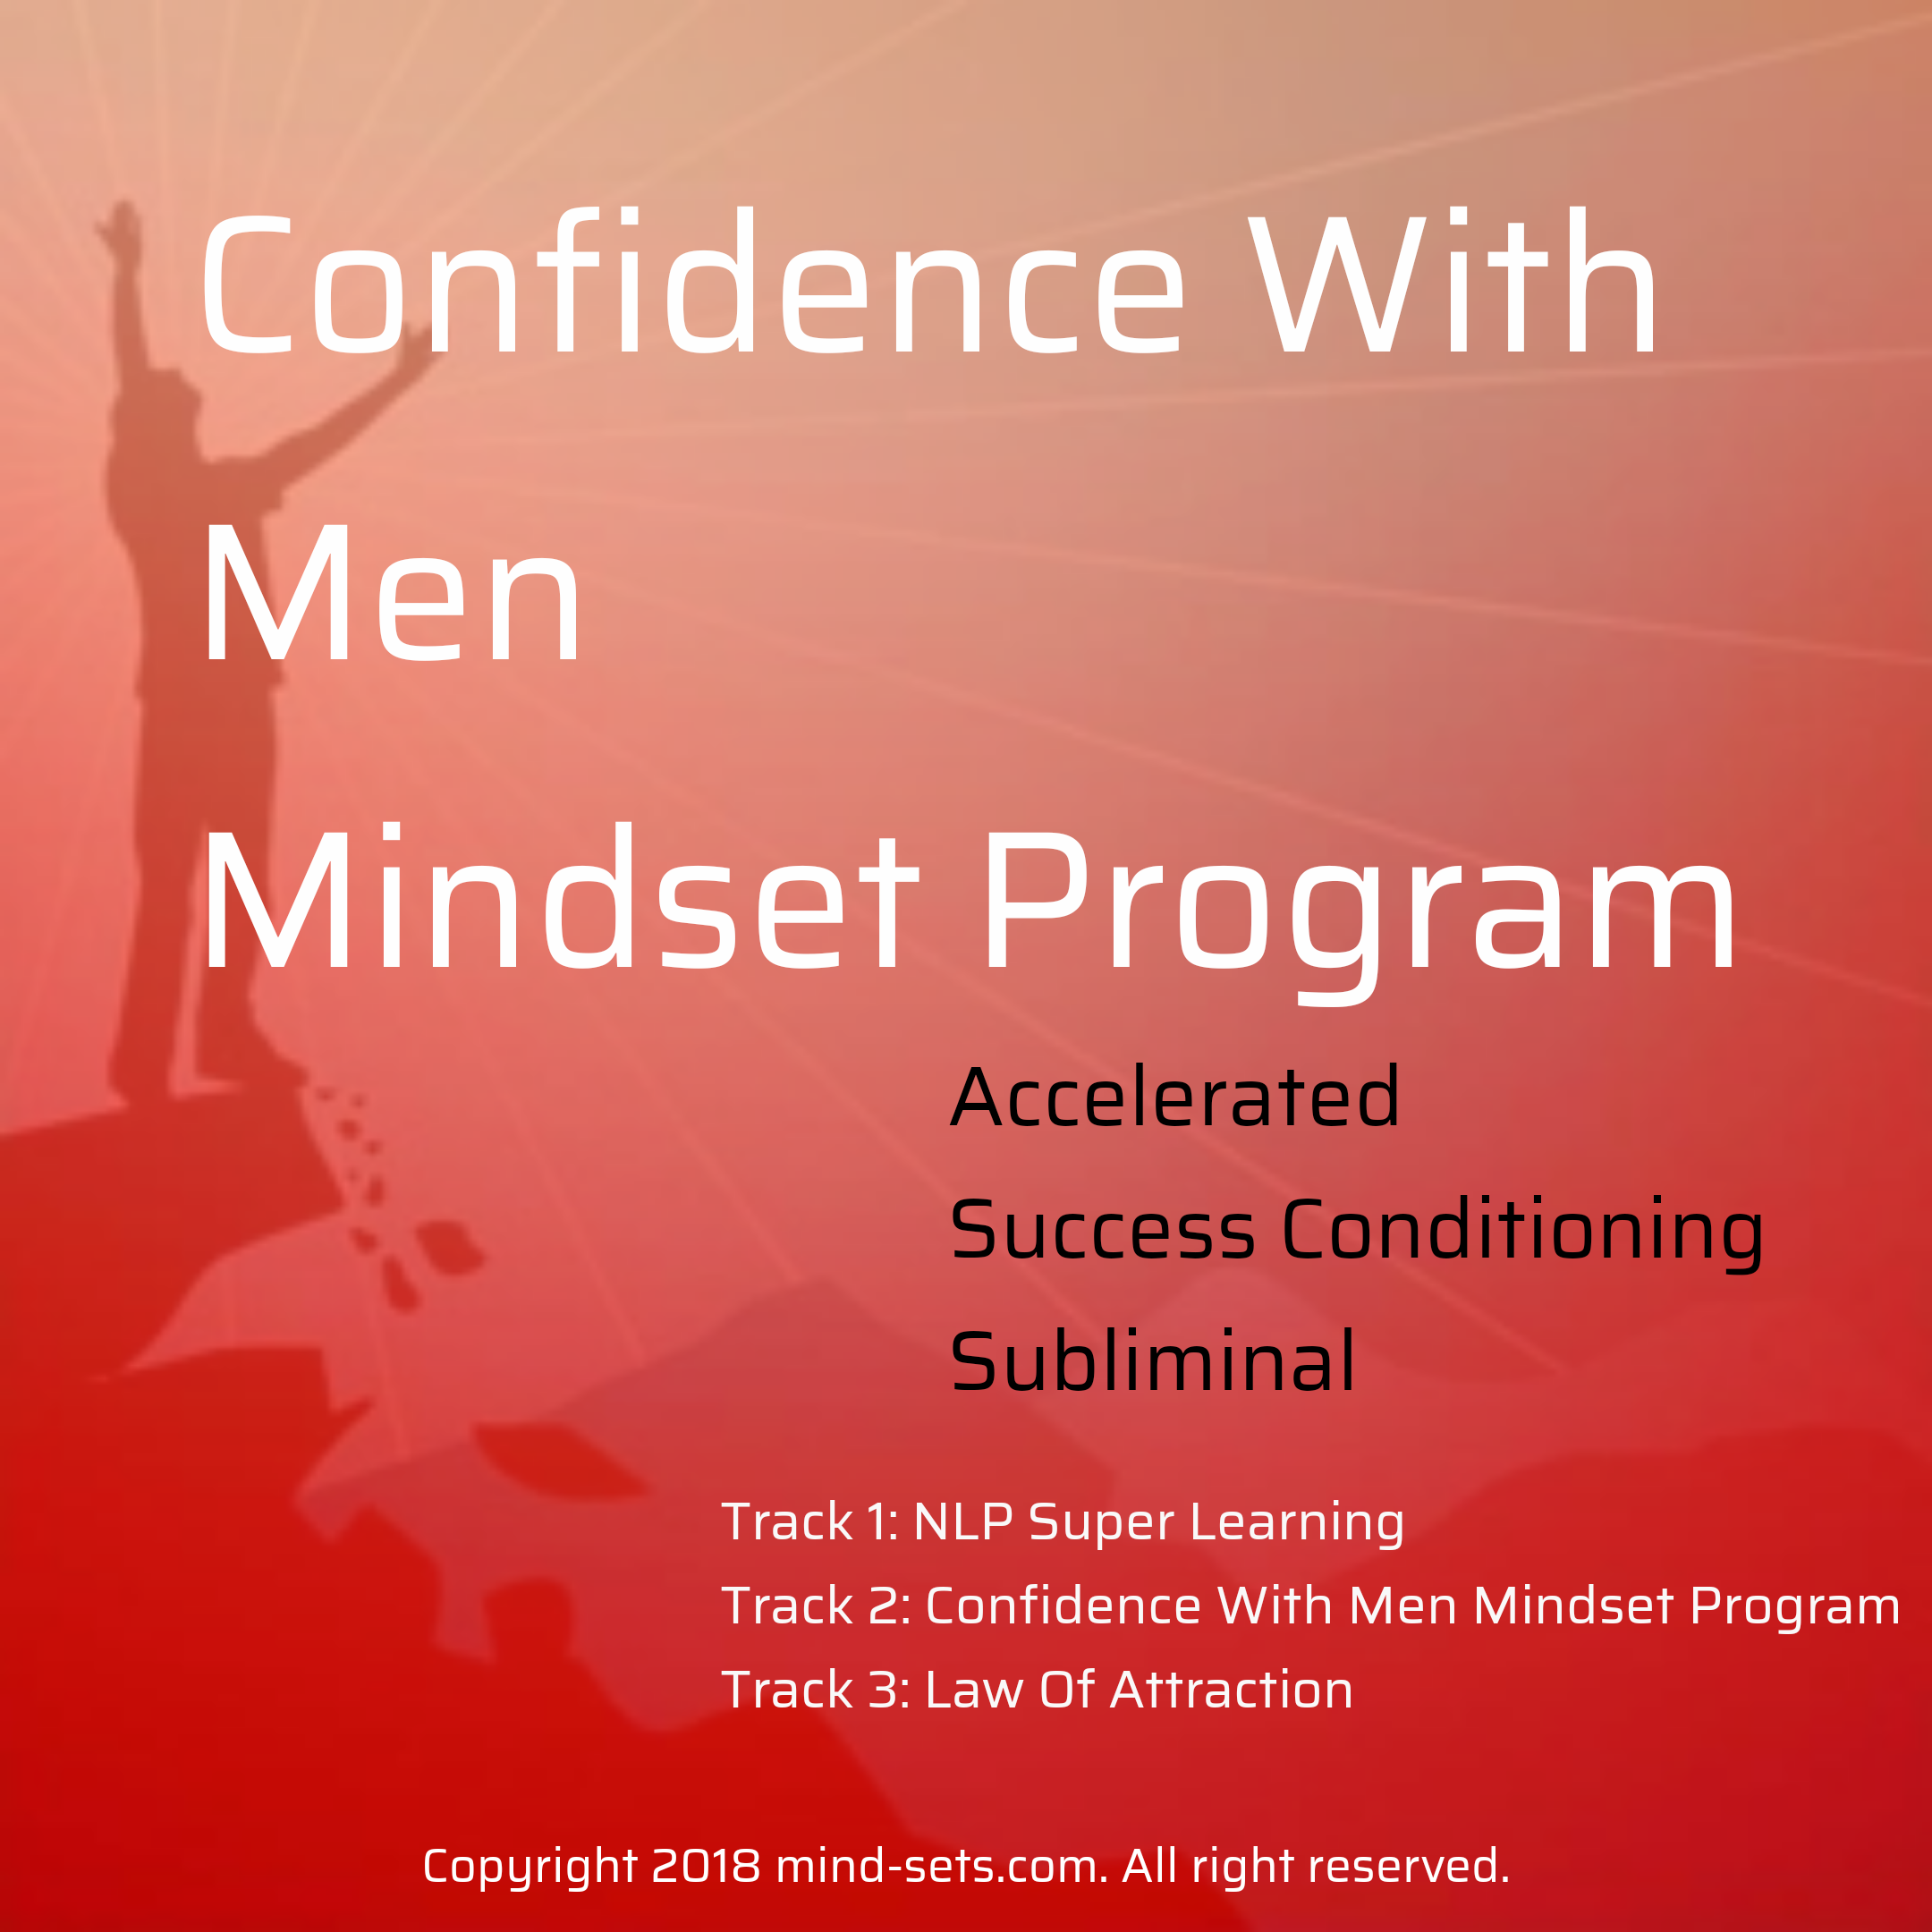 Confidence With Men Mindset Program